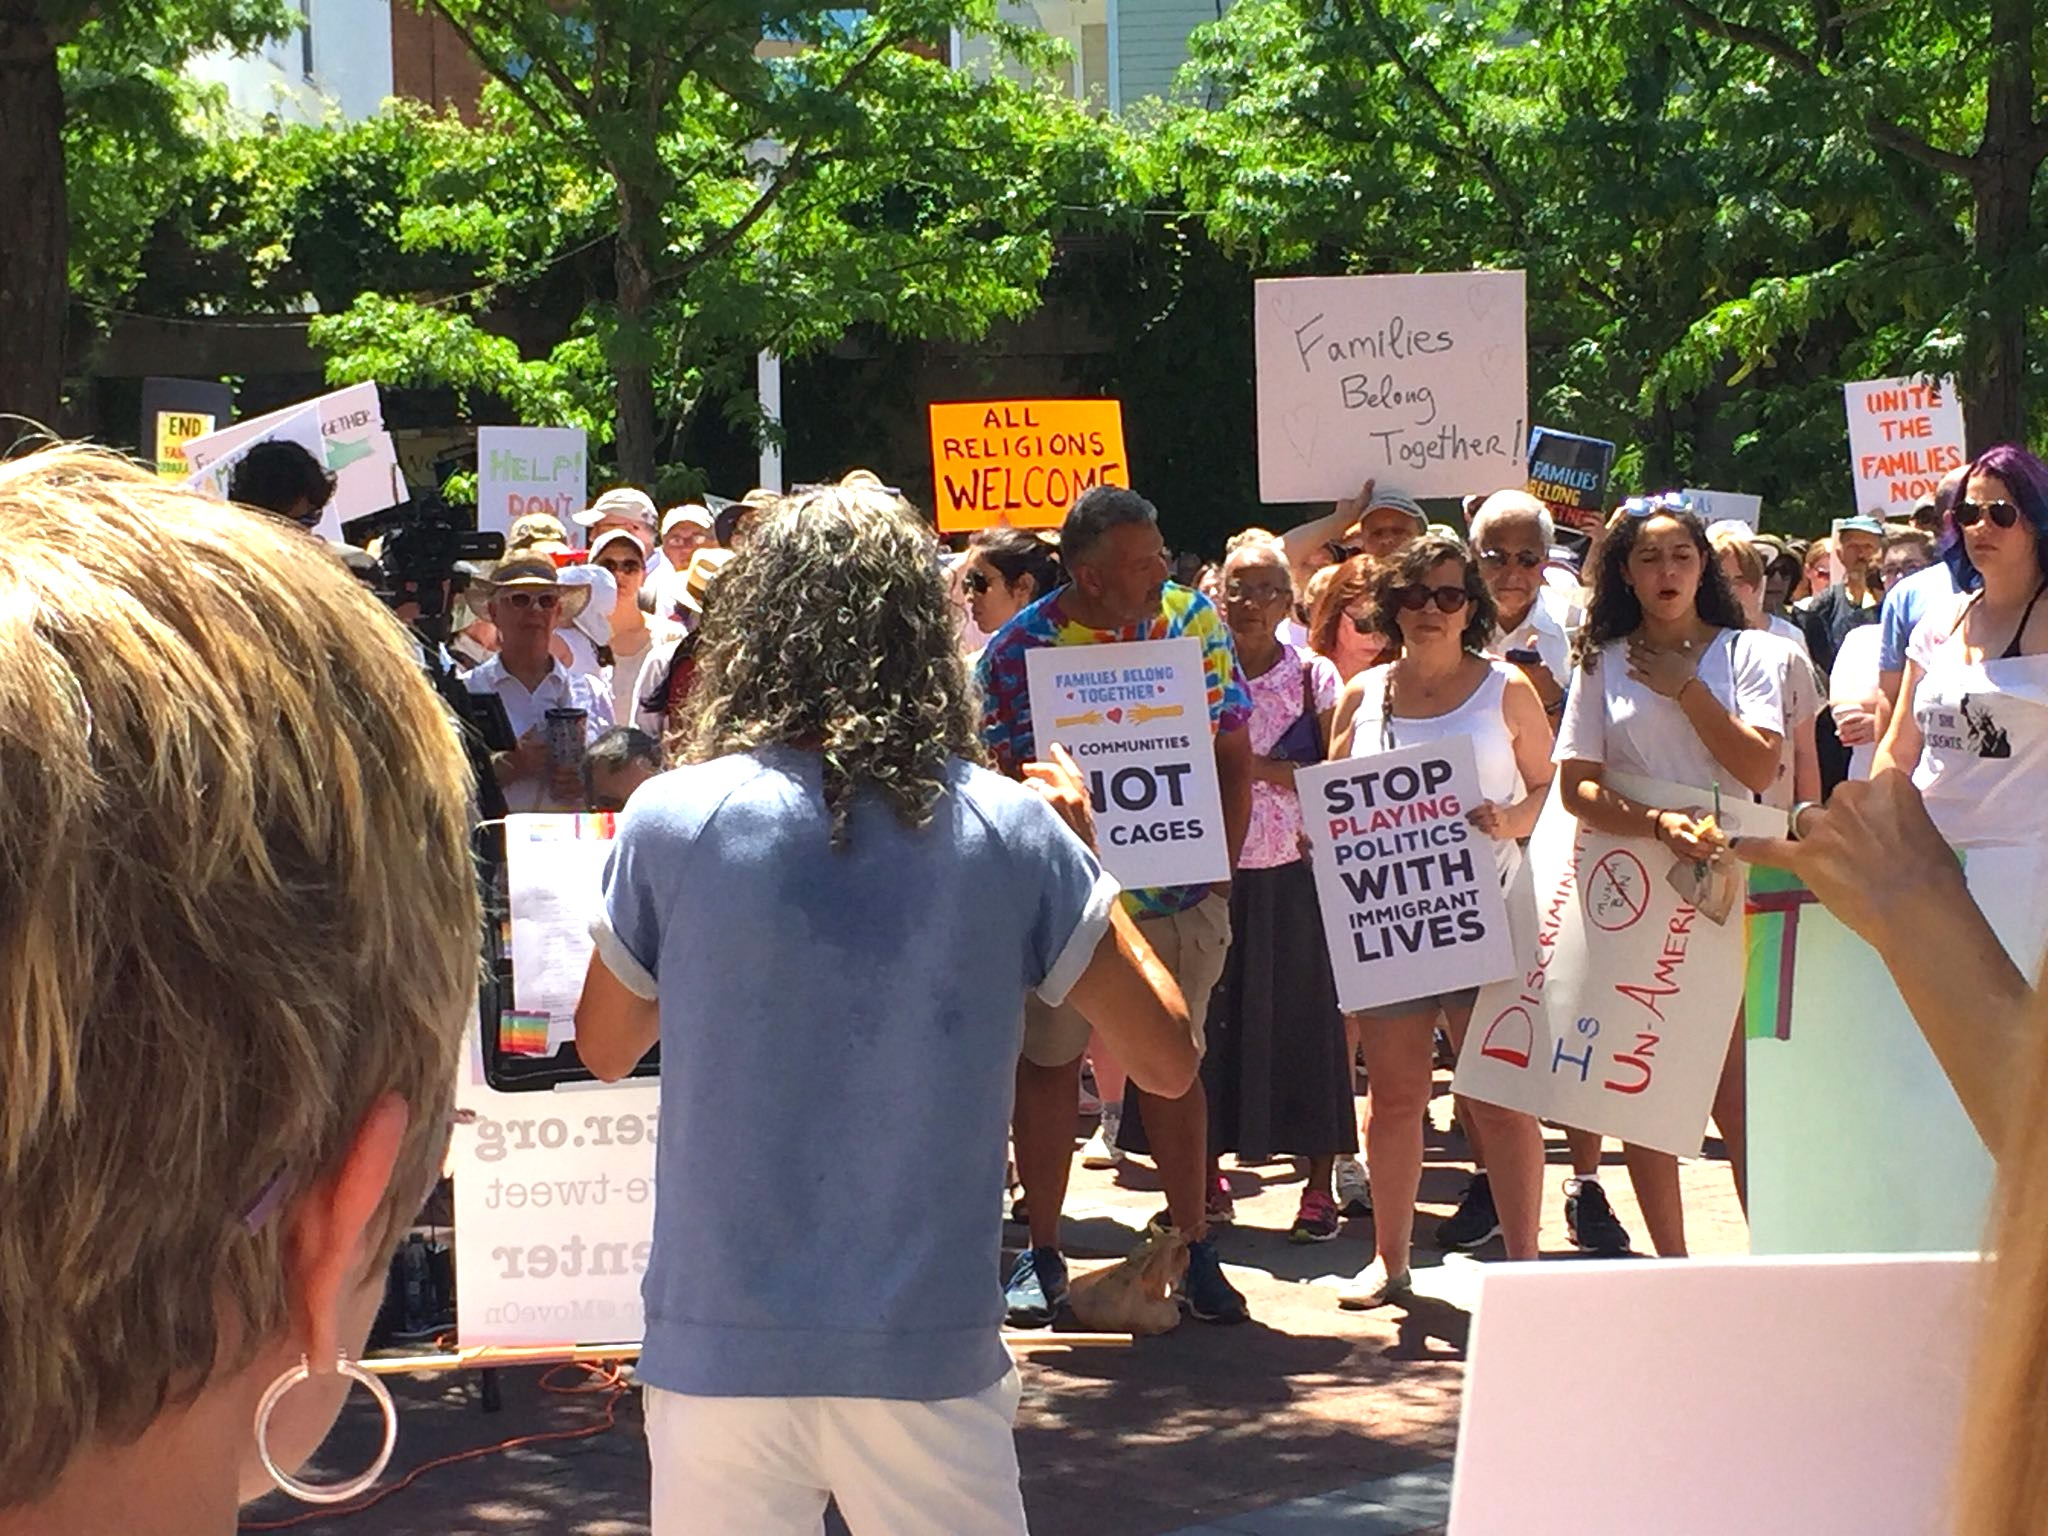 BRCSJ Families Belong Together Rally32.JPG